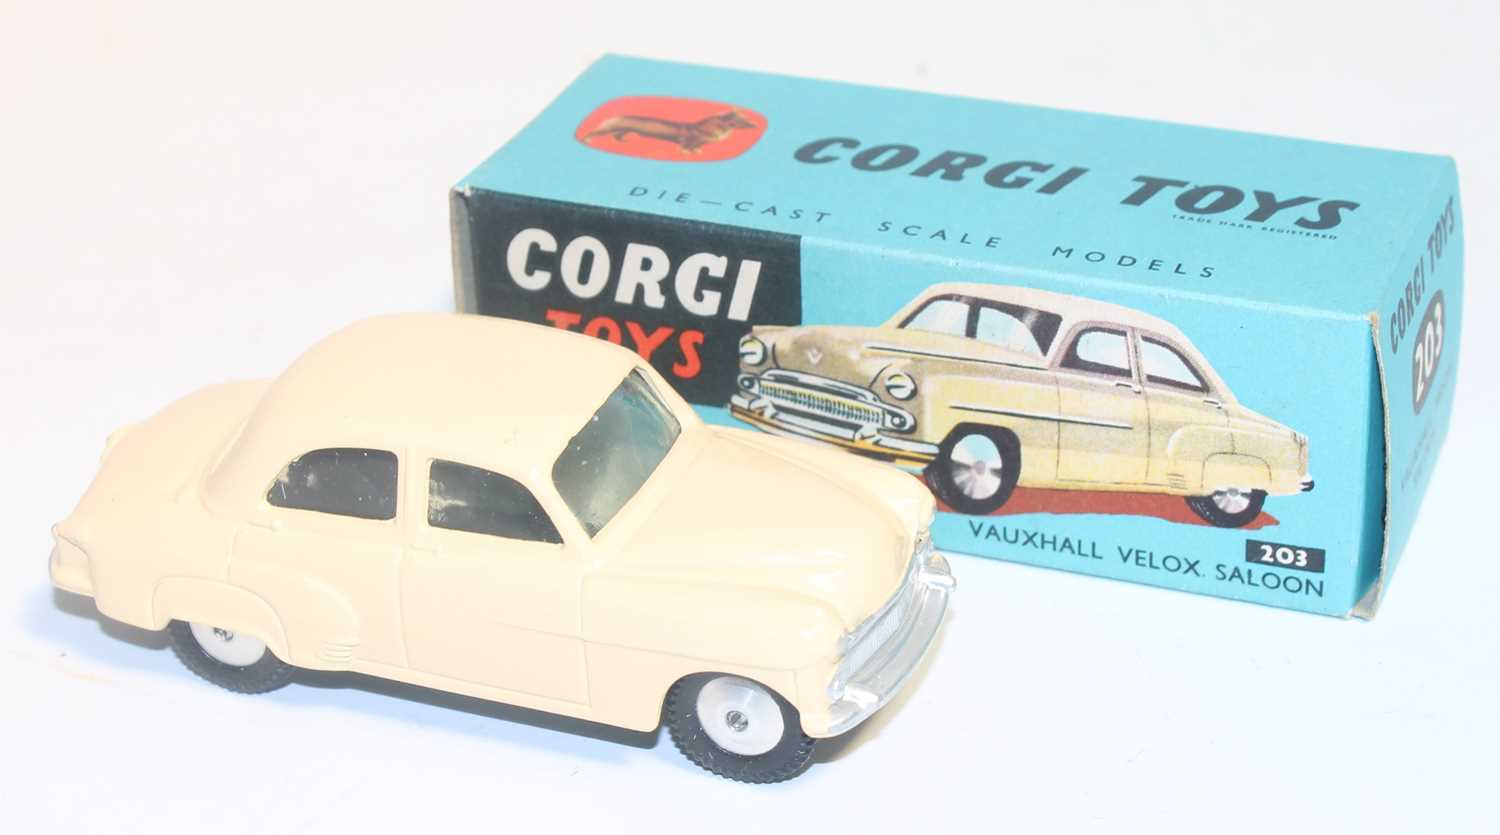 A Corgi Toys No. 203 Vauxhall Velox in cream colour with spun hubs, near mint to mint condition, - Image 2 of 3